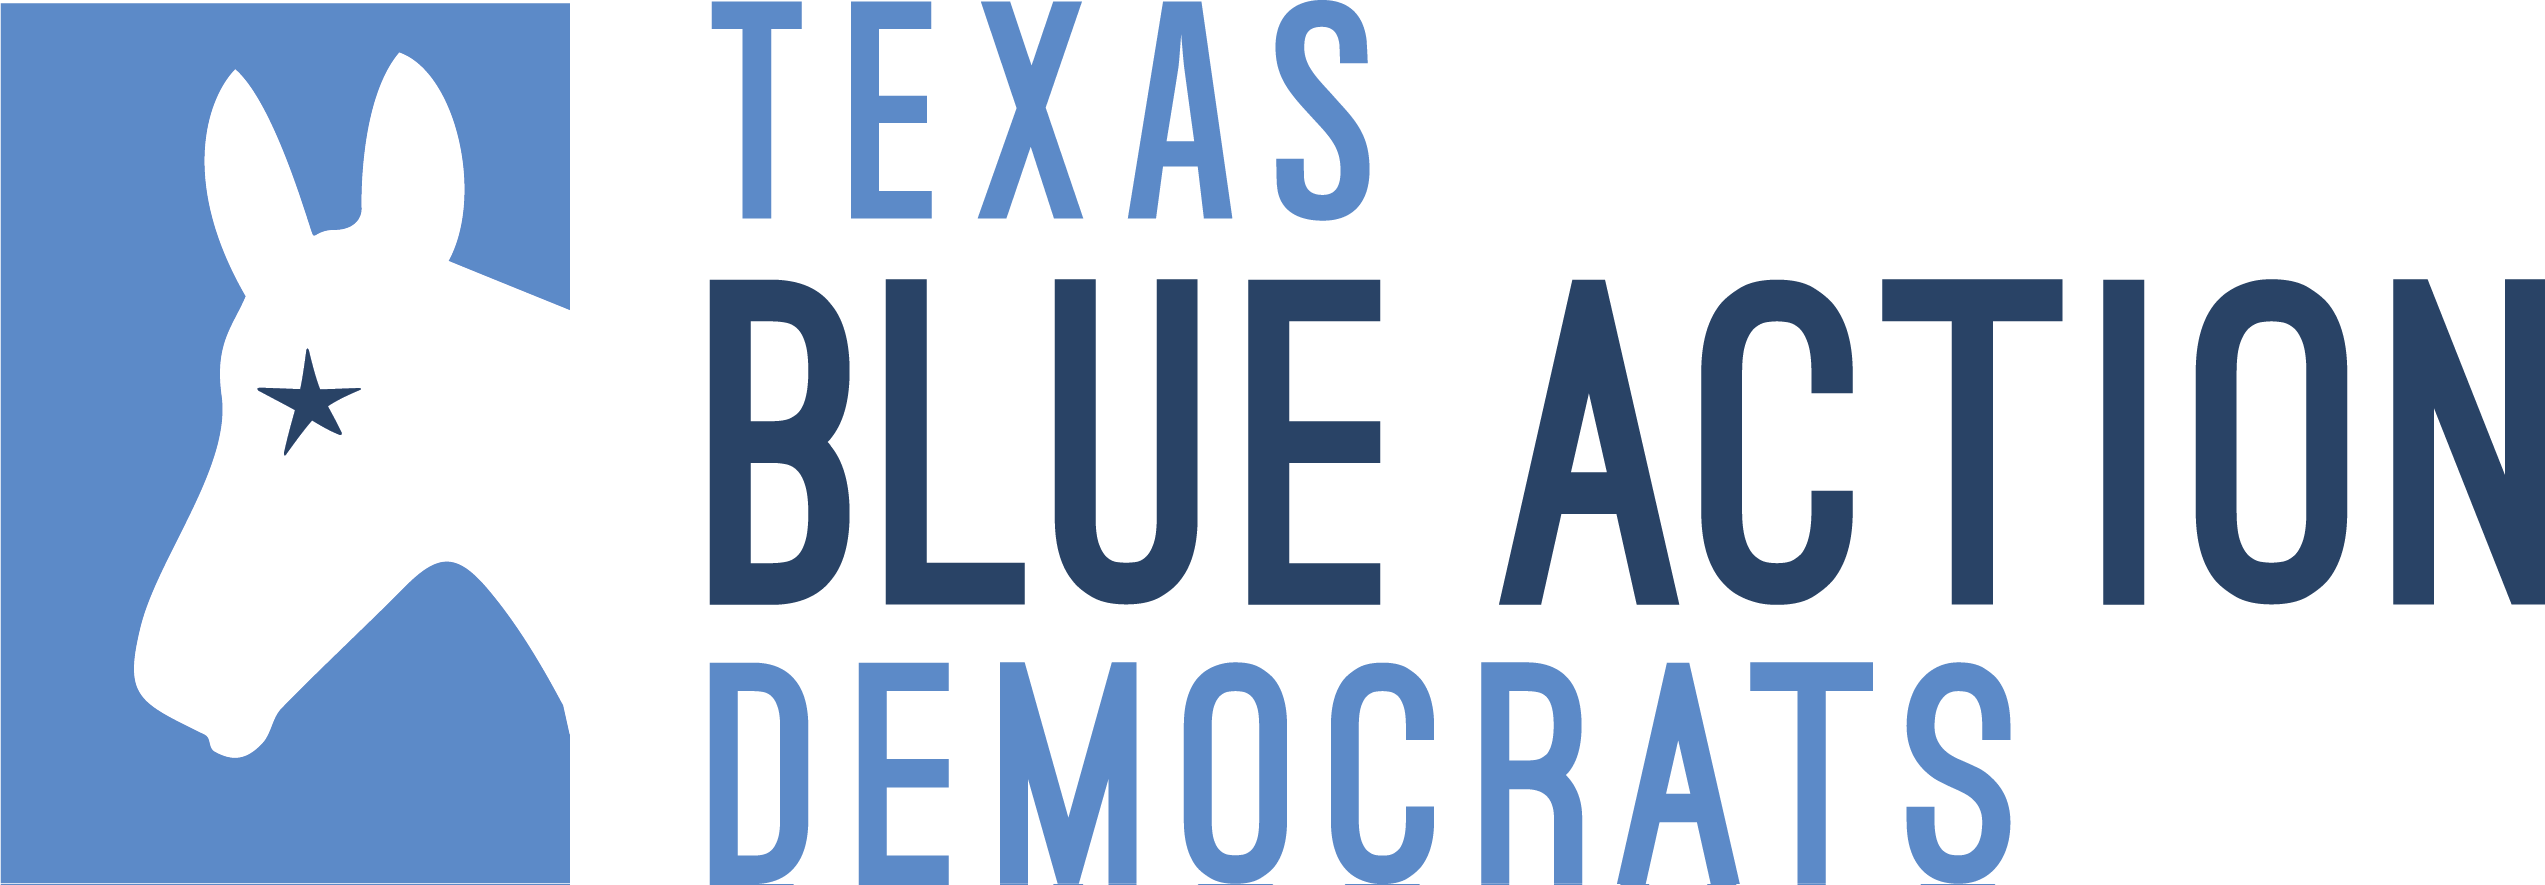 Blue Action Democrats - Southwest Austin (TX)